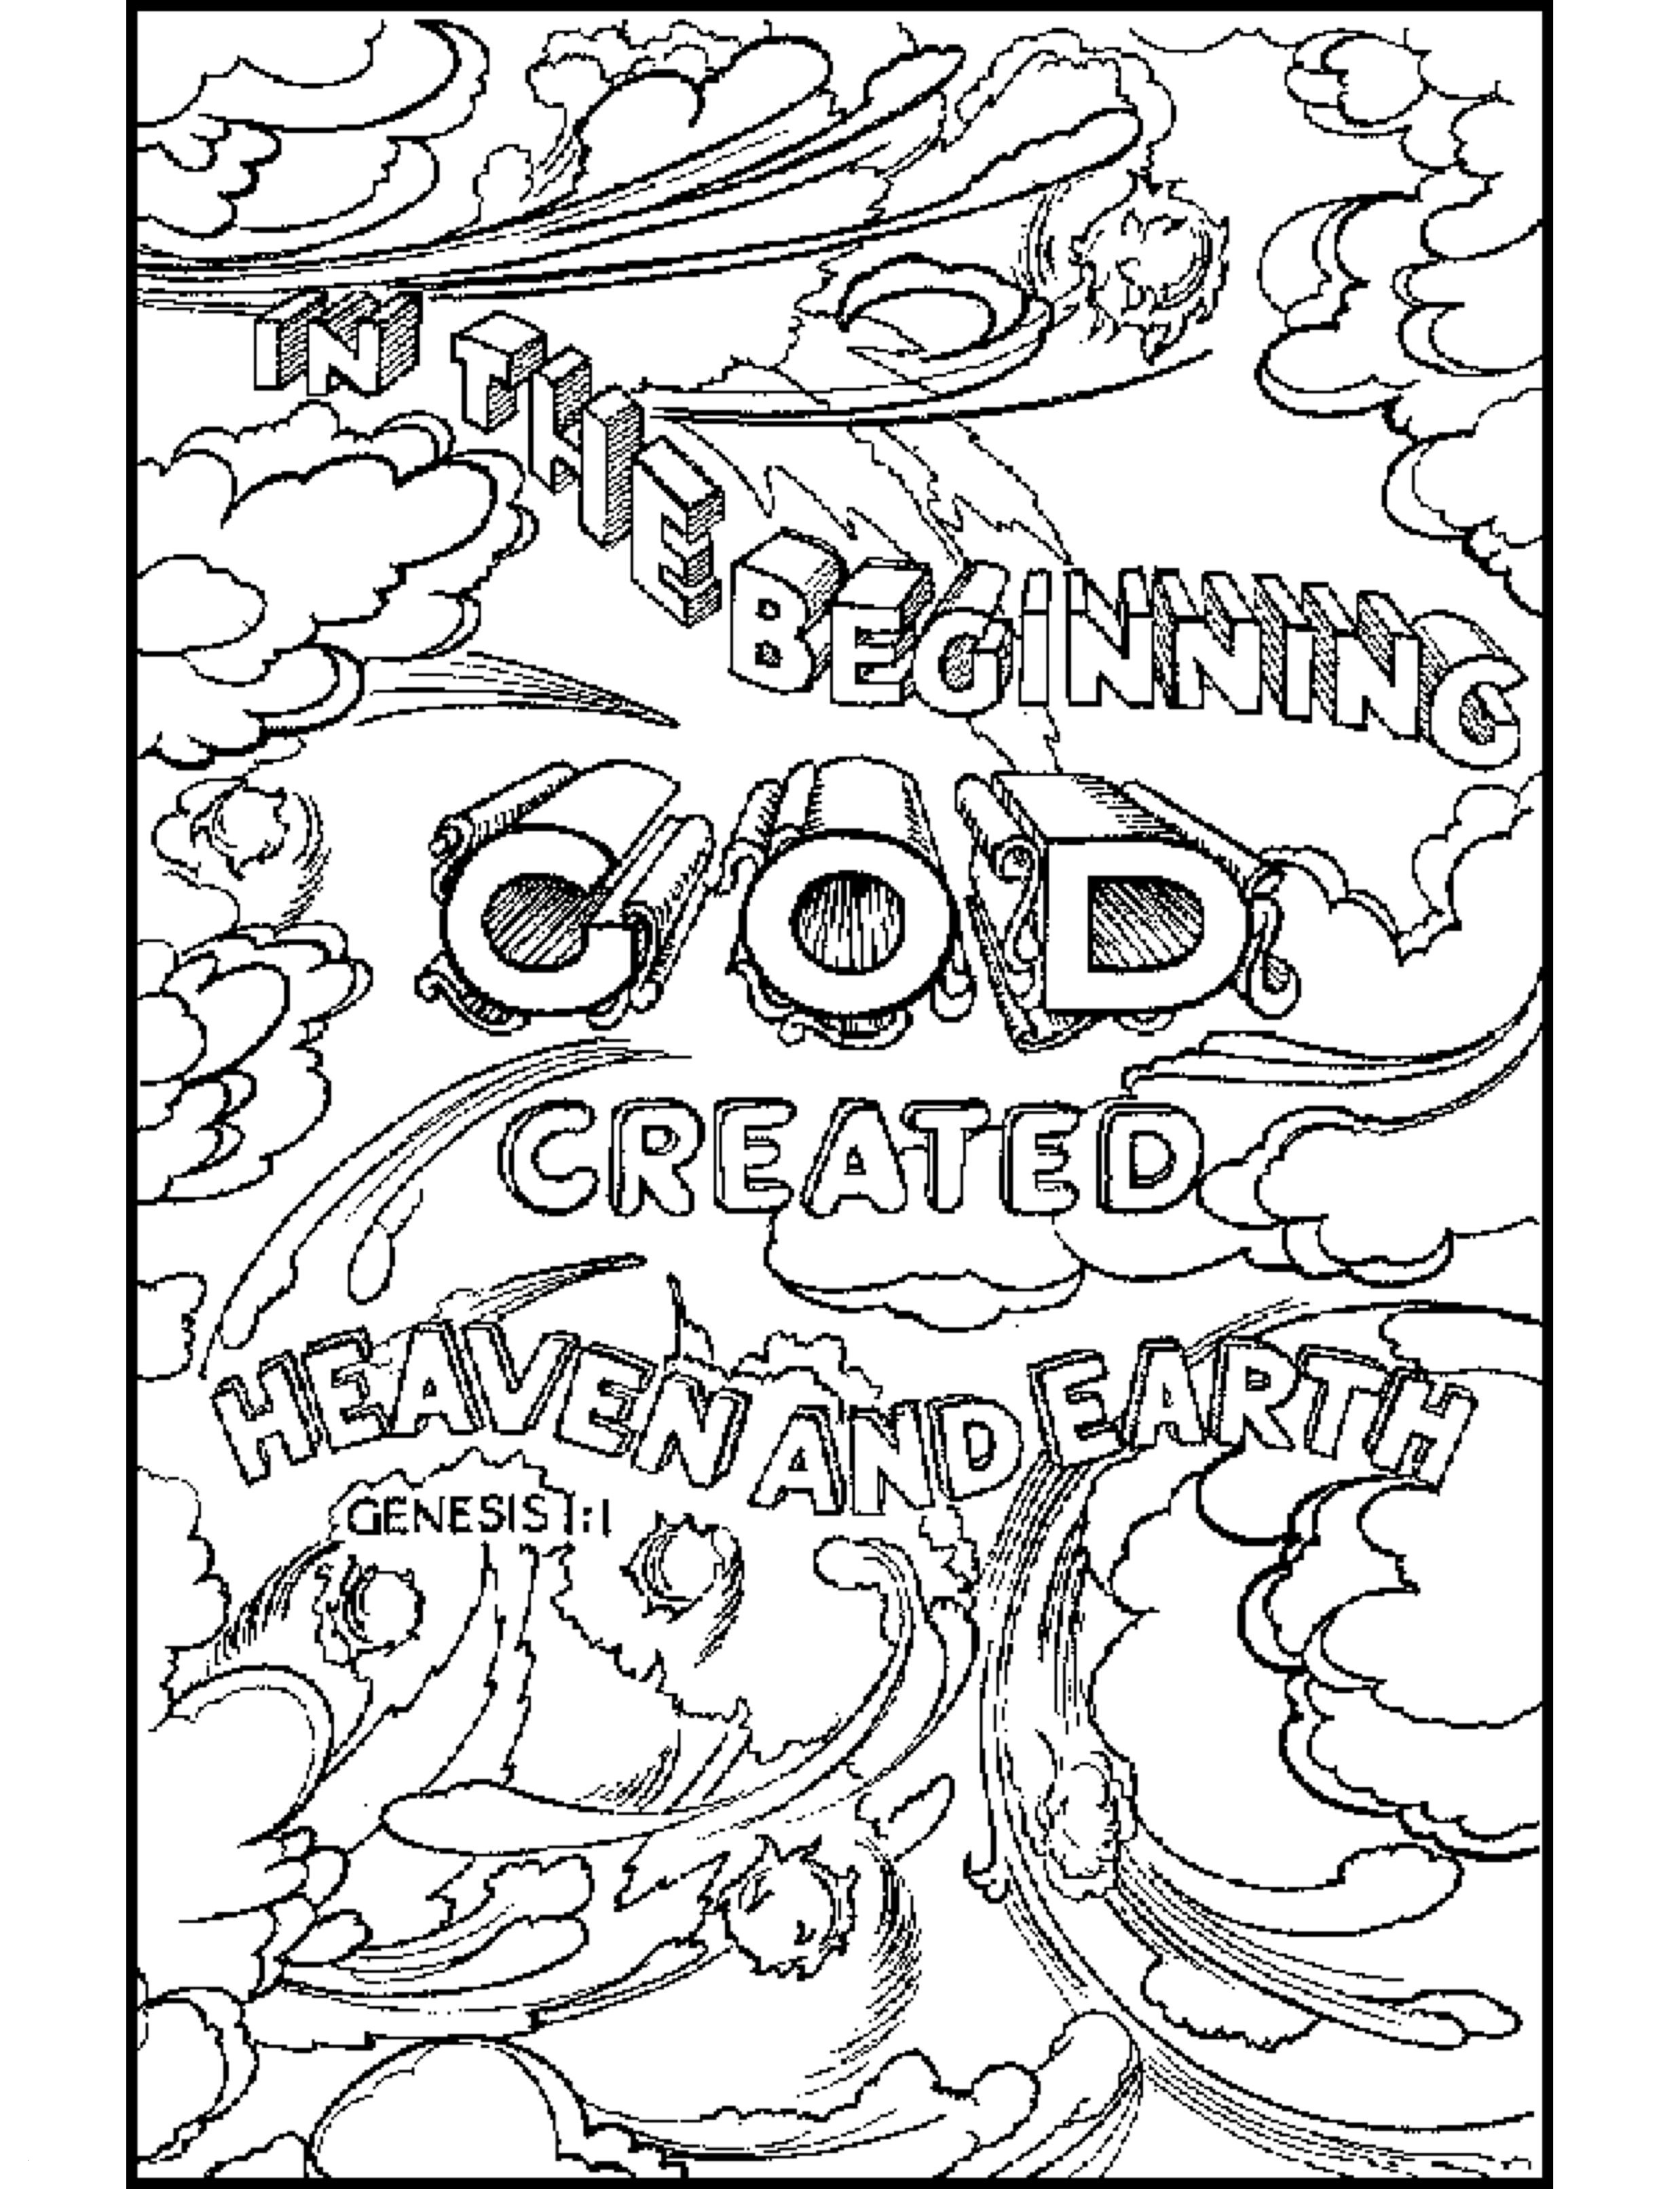 Bible Story Coloring Pages Gospel Light  Printable 20q - Save it to your computer